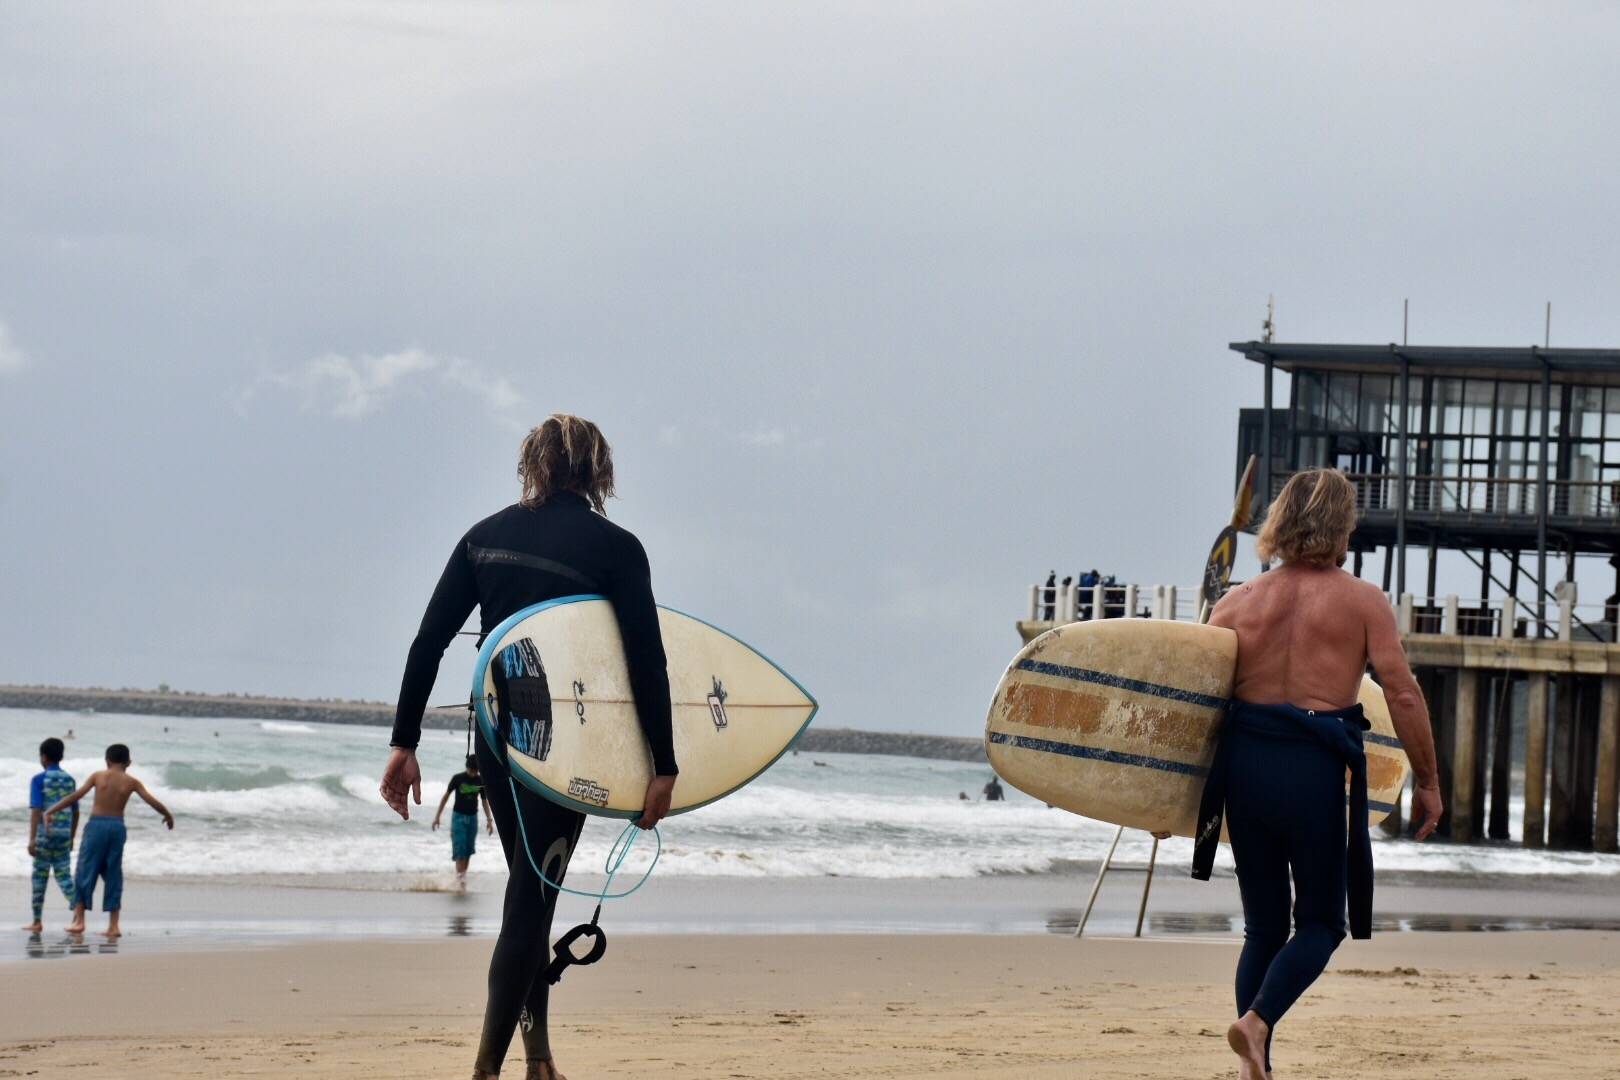 Surfing dudes in Durban, South Africa, September 2017